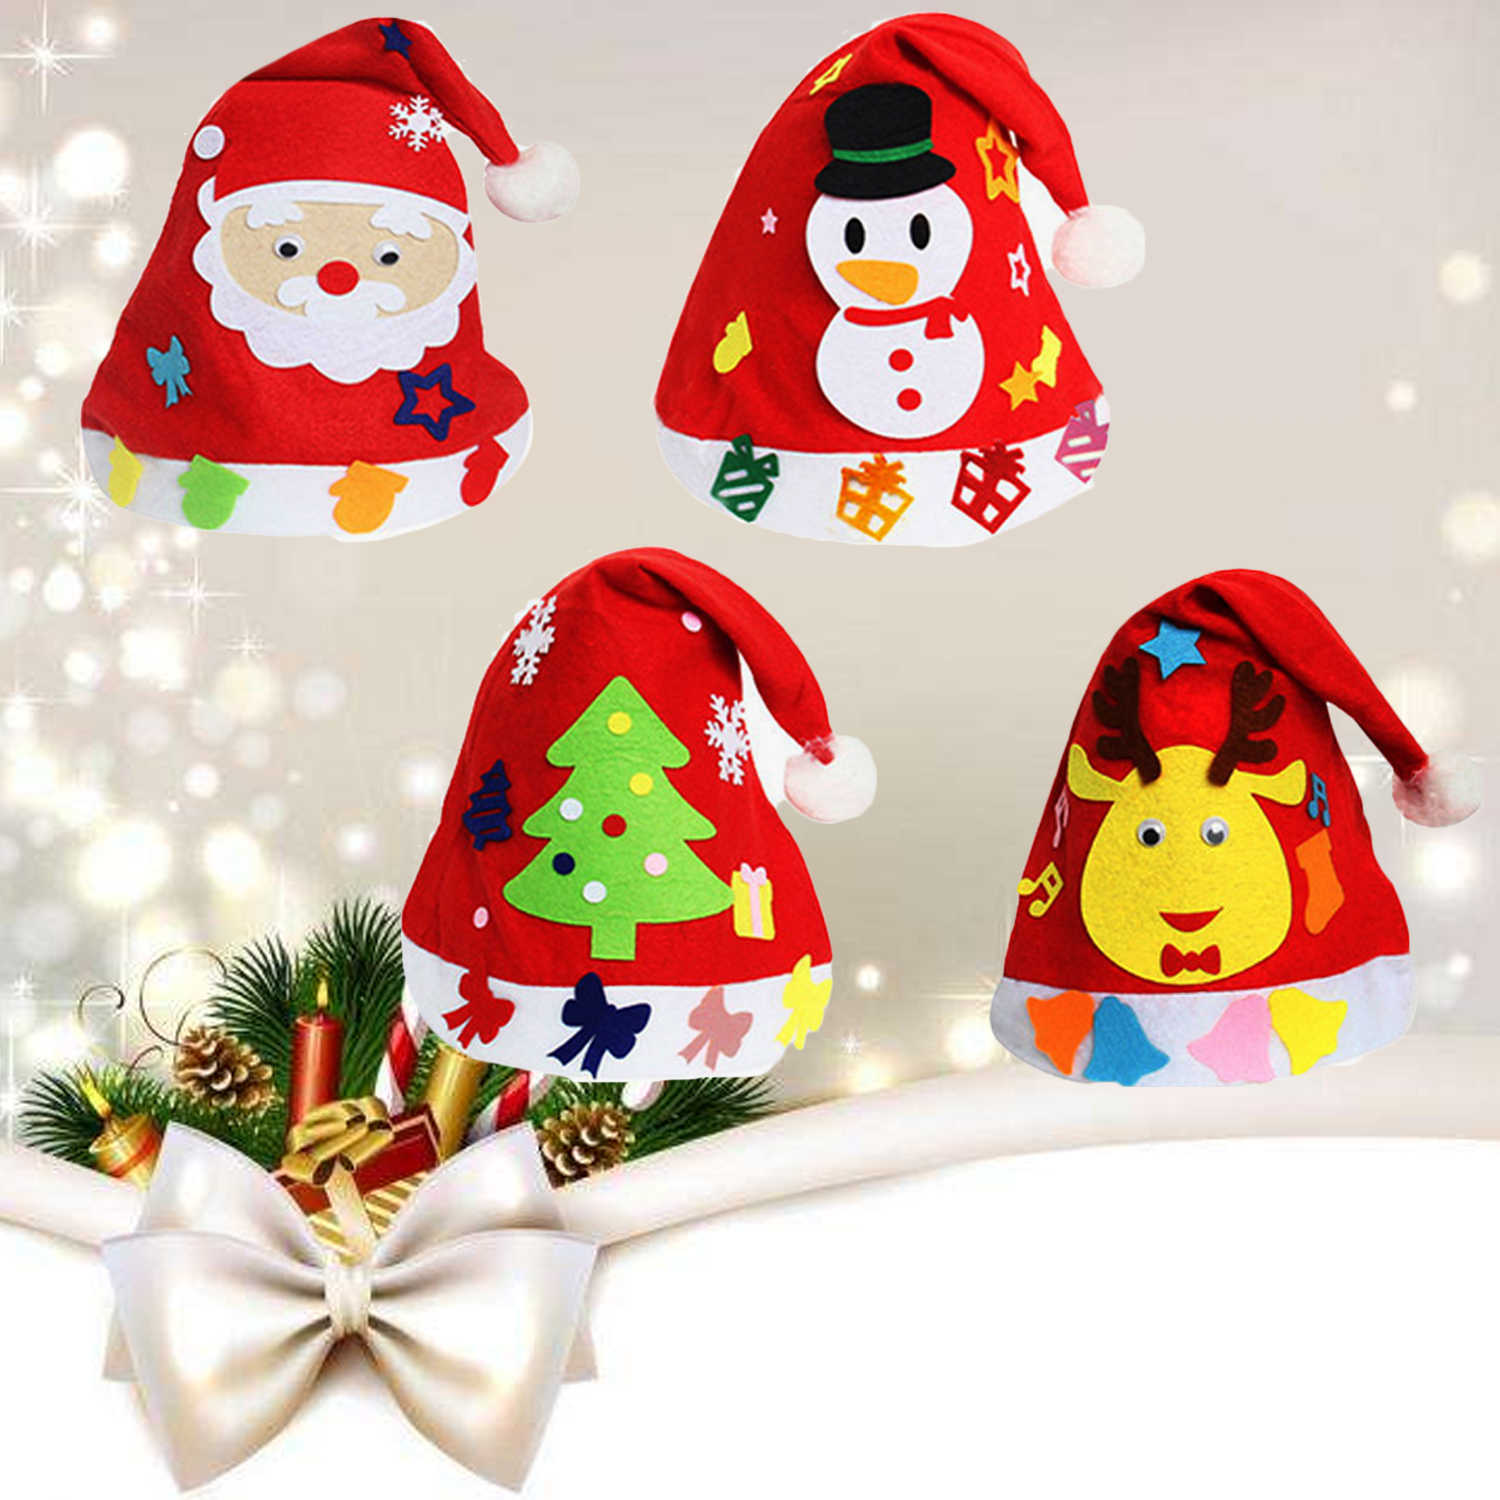 289a313da13f8 4Pcs Cute Unisex Children Kids Non-woven Fabric DIY Christmas Santa Claus  Hats Elk Tree